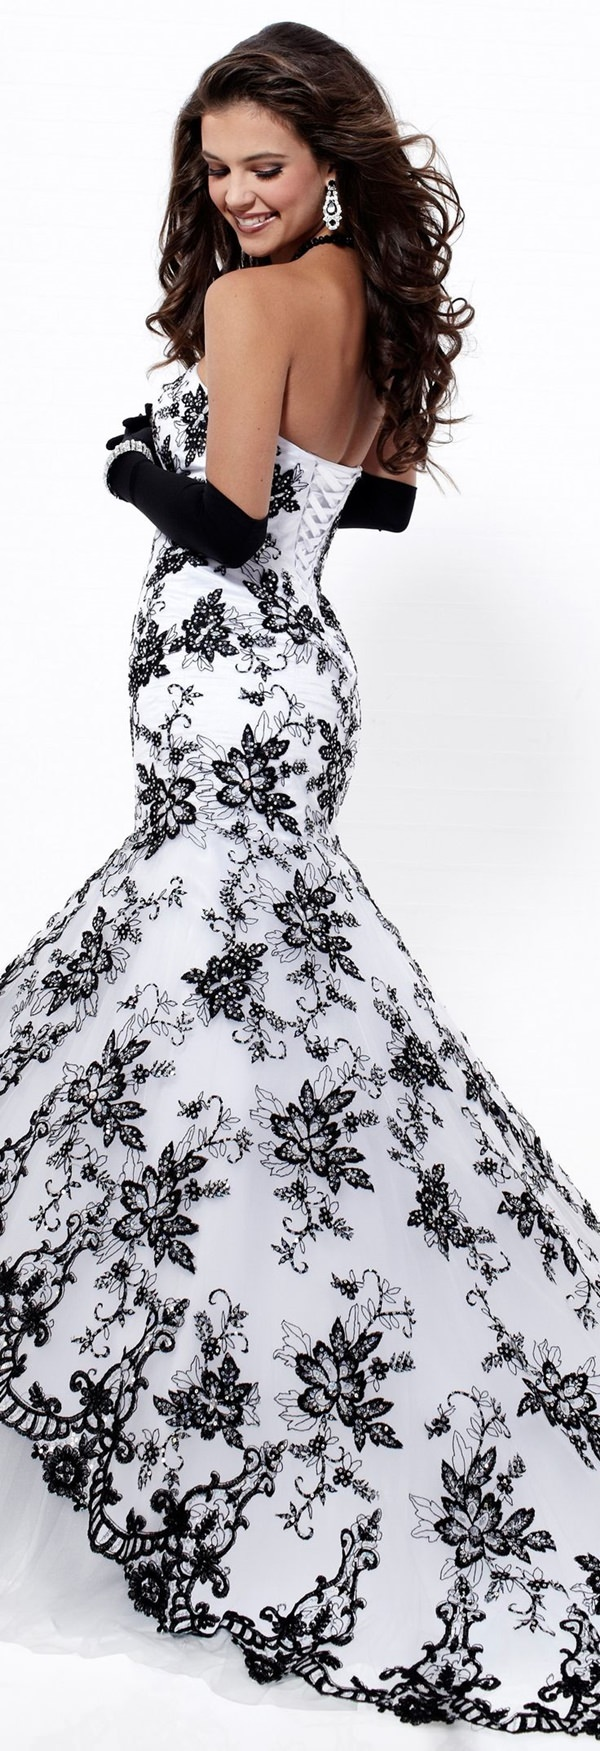 Black White Wedding Dresses 3